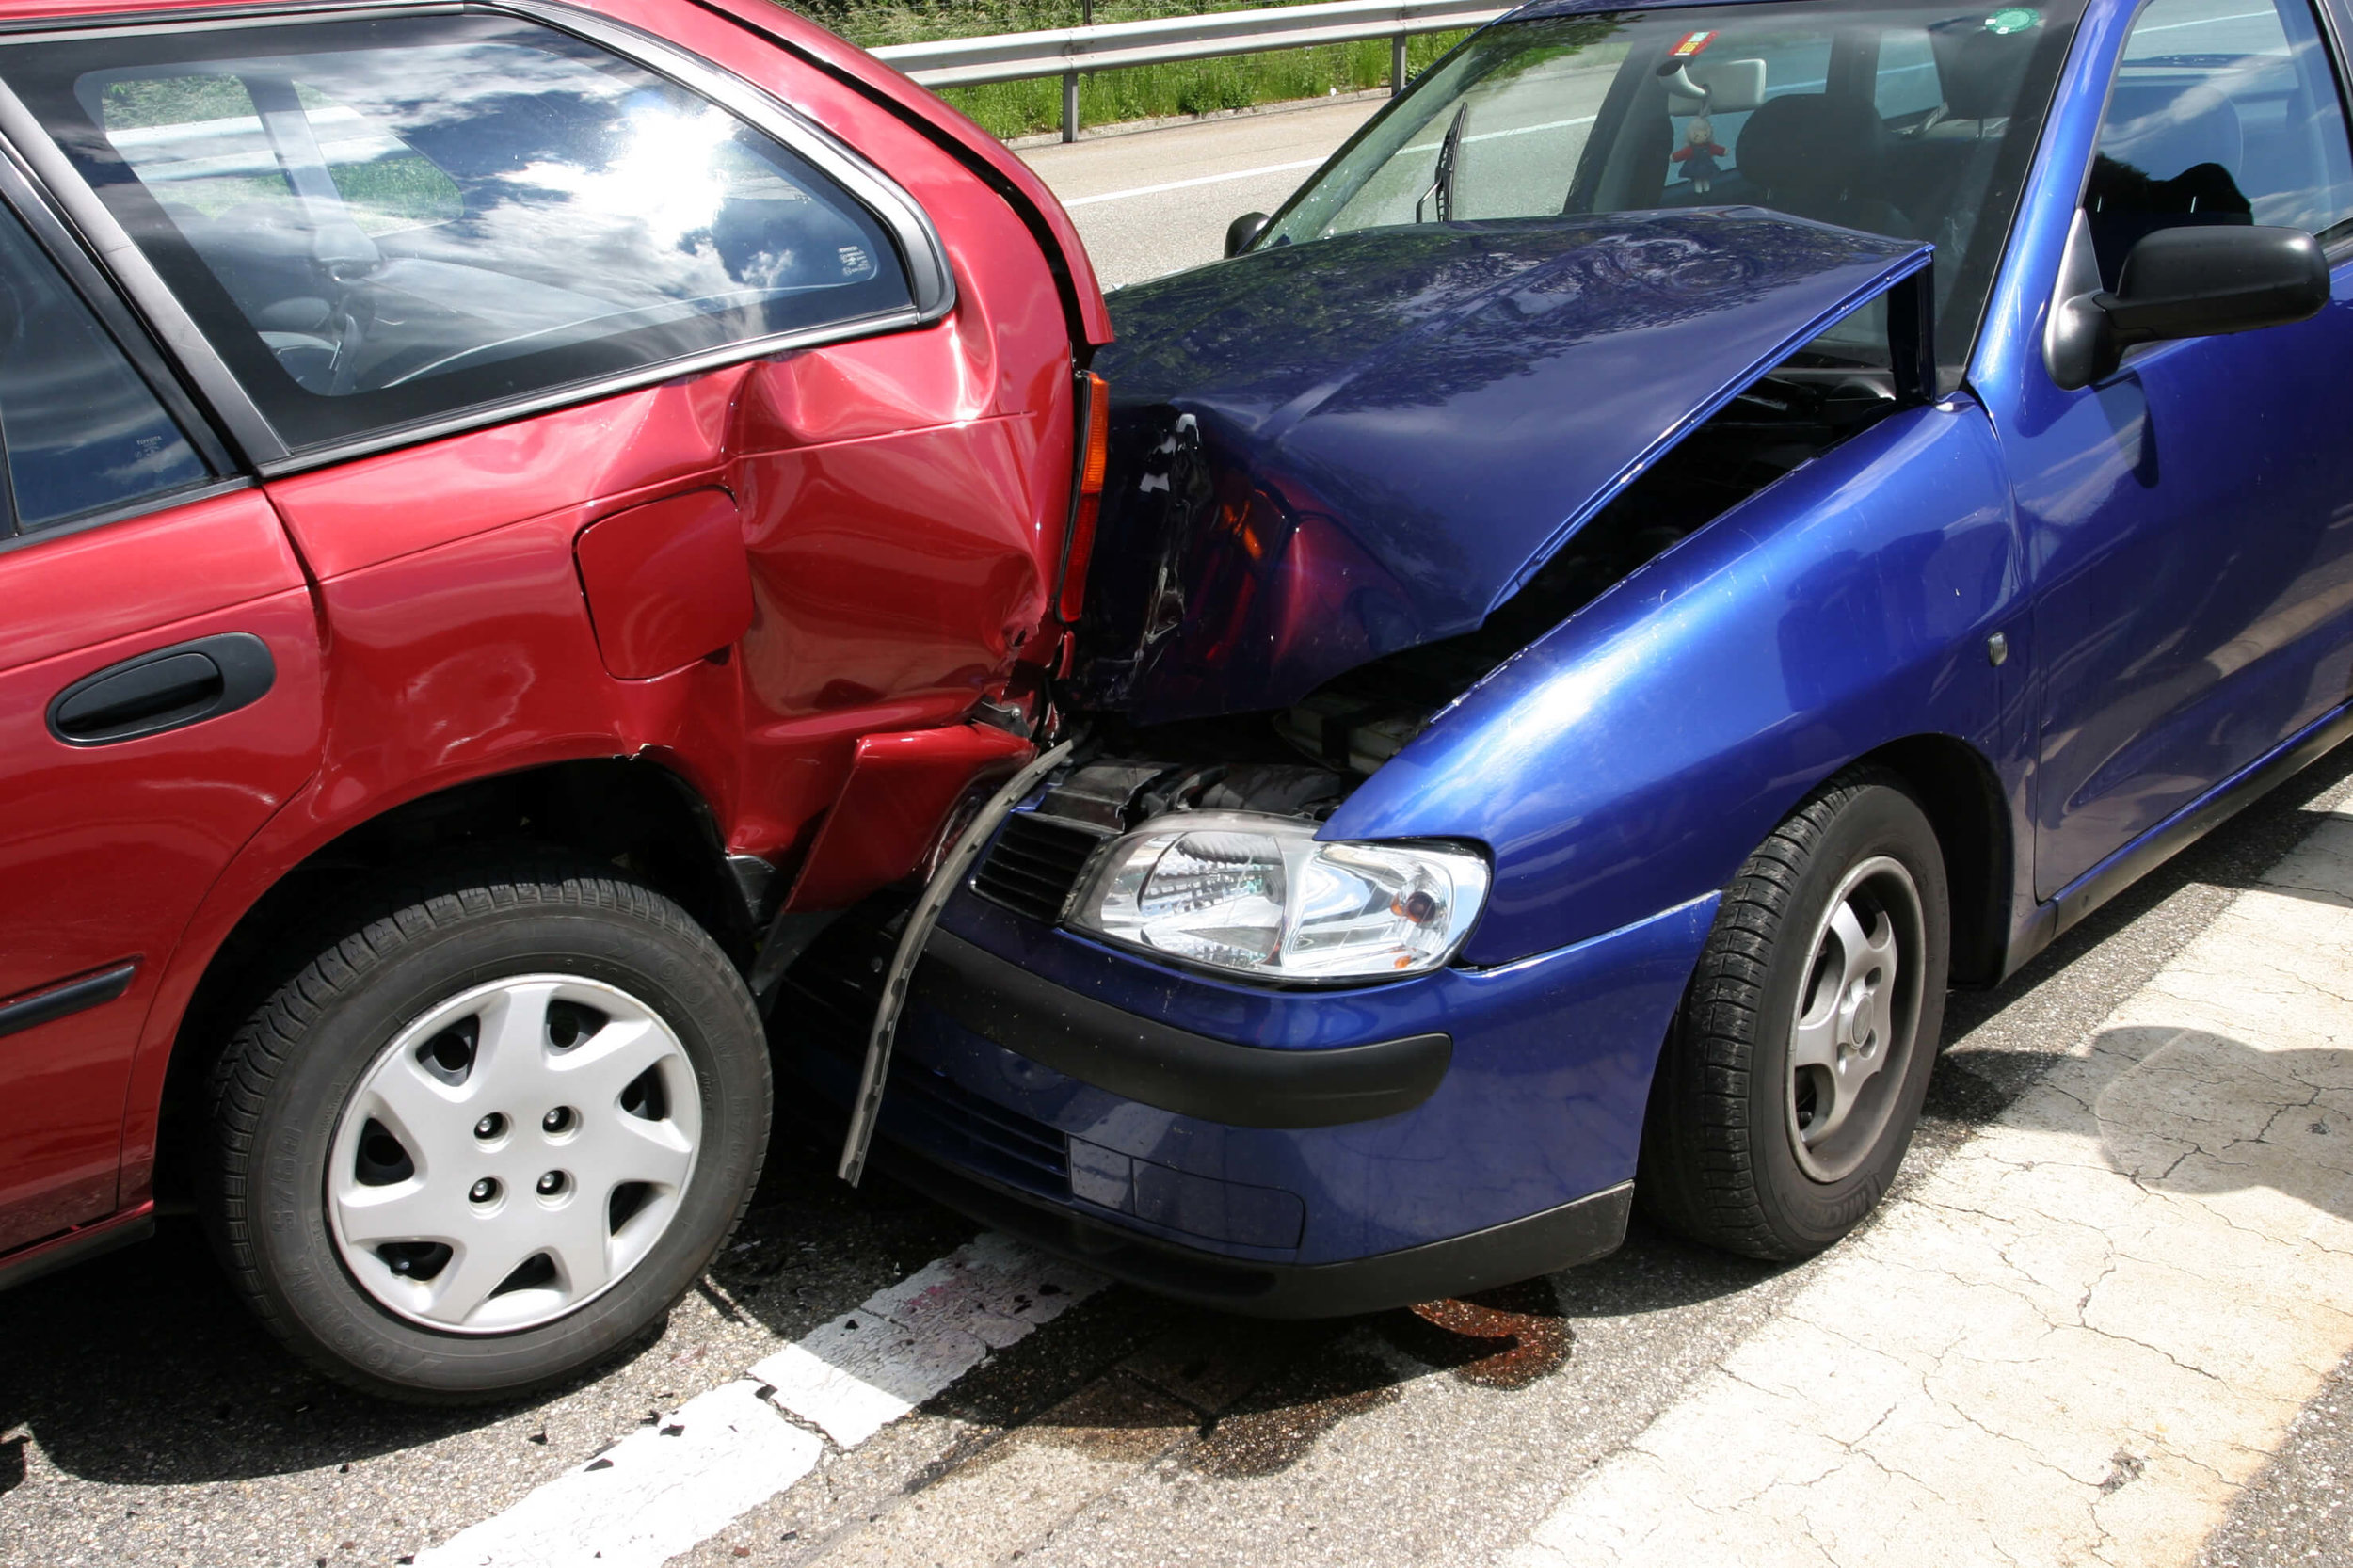 A car accident can cause devastating or fatal injuries.